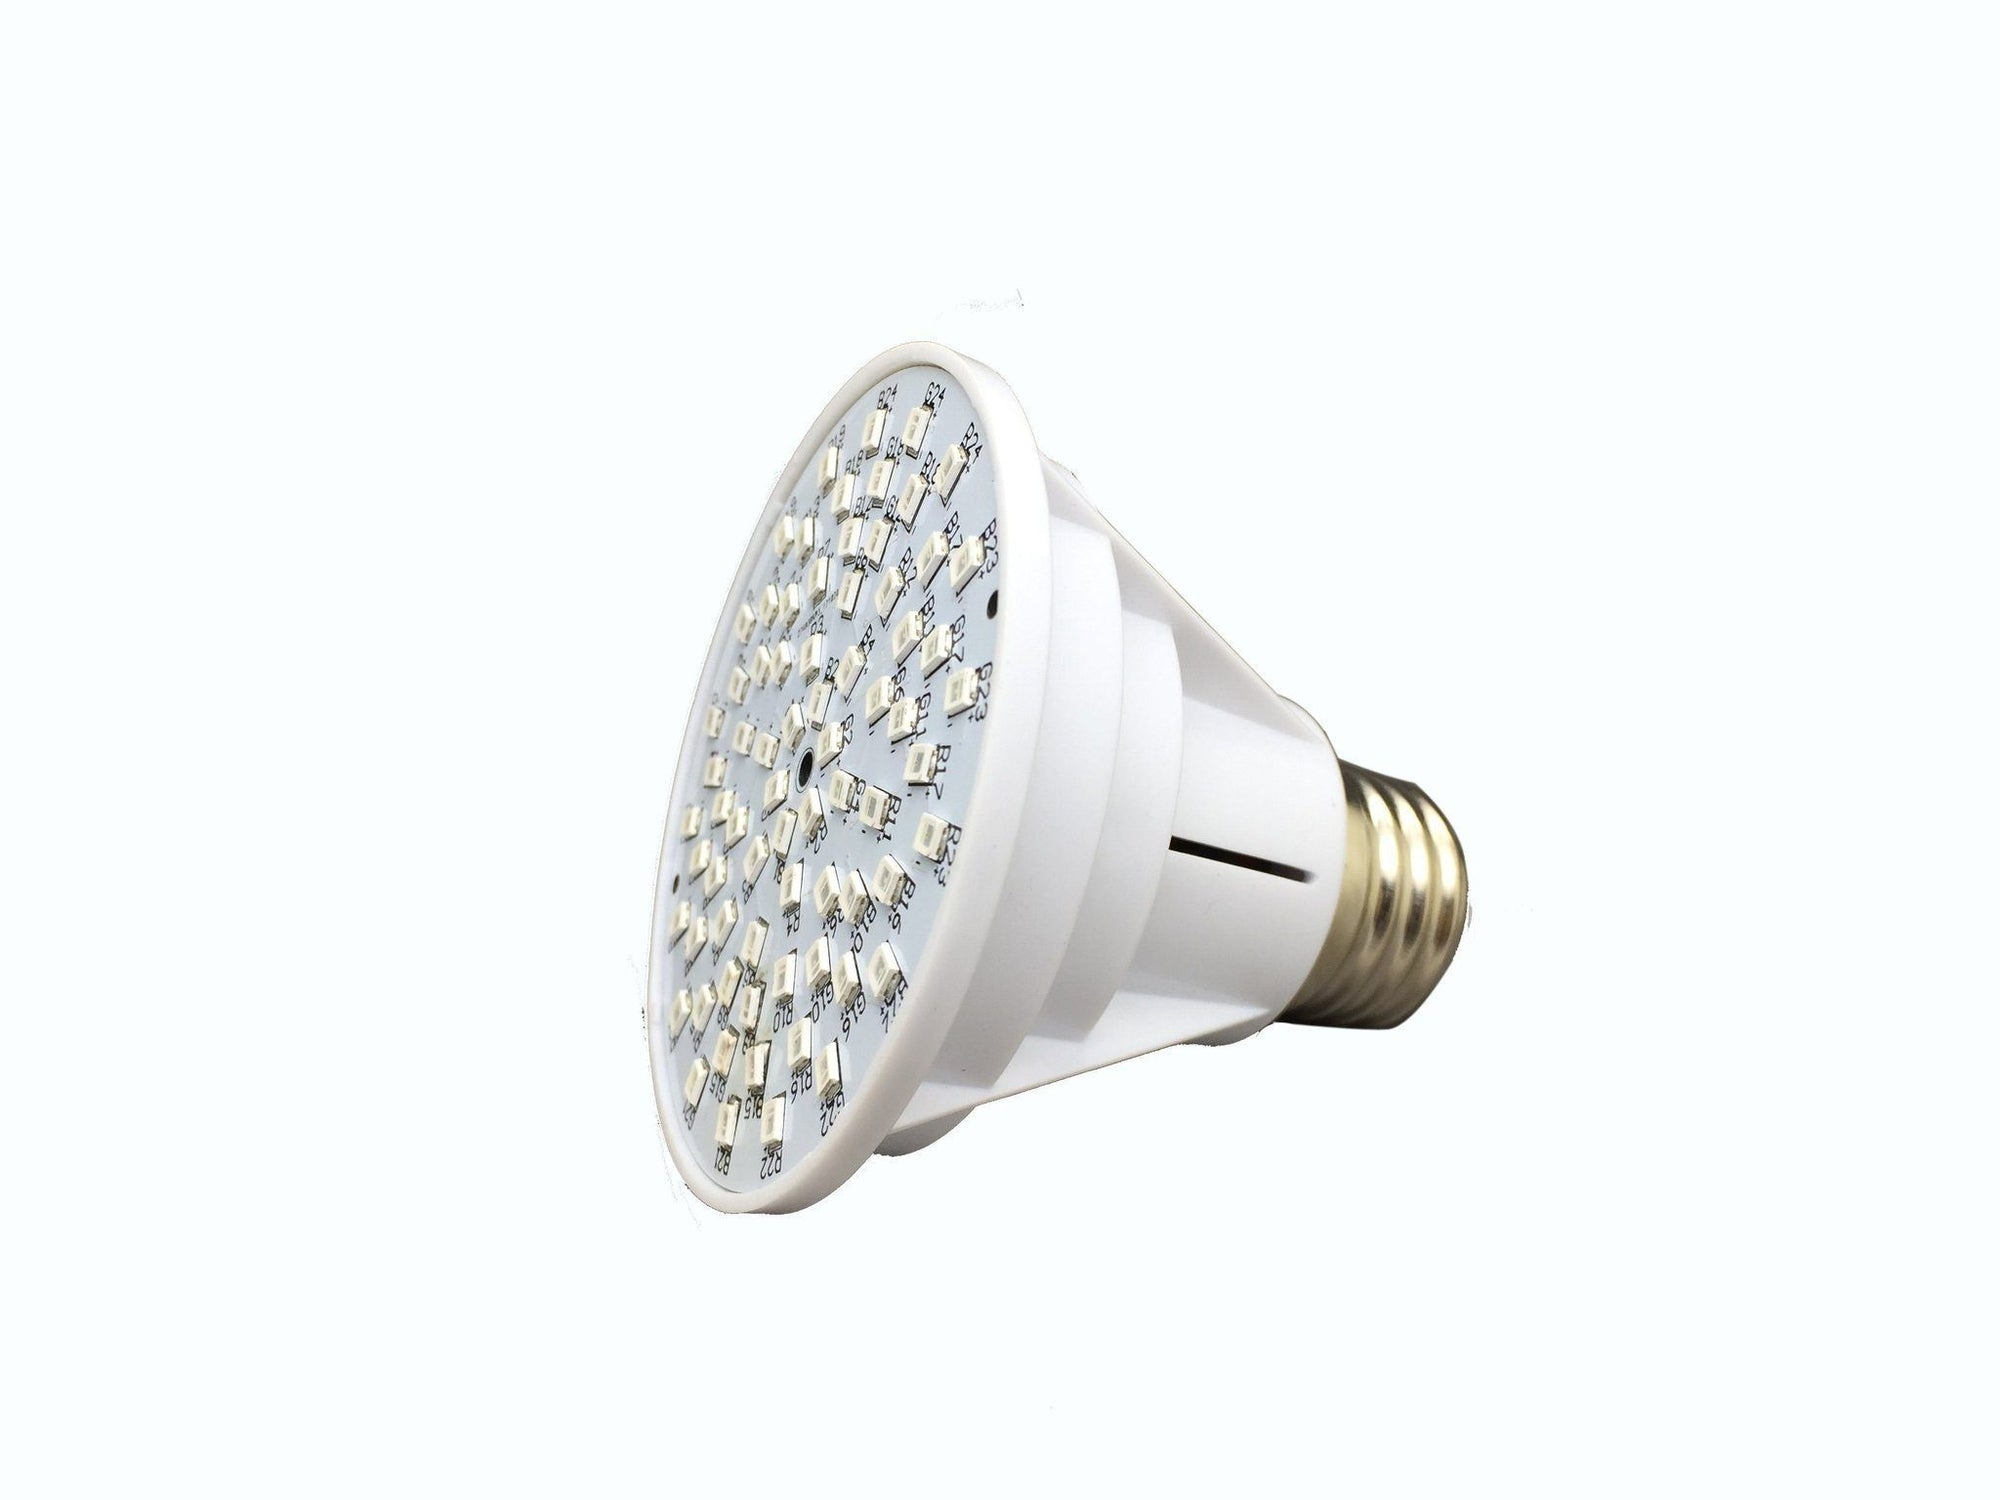 Pool Tone WHITE LED SPA Light Bulb 12VAC for Hayward Pentair Lights Home & Garden > Lighting > Light Bulbs Pool Tone